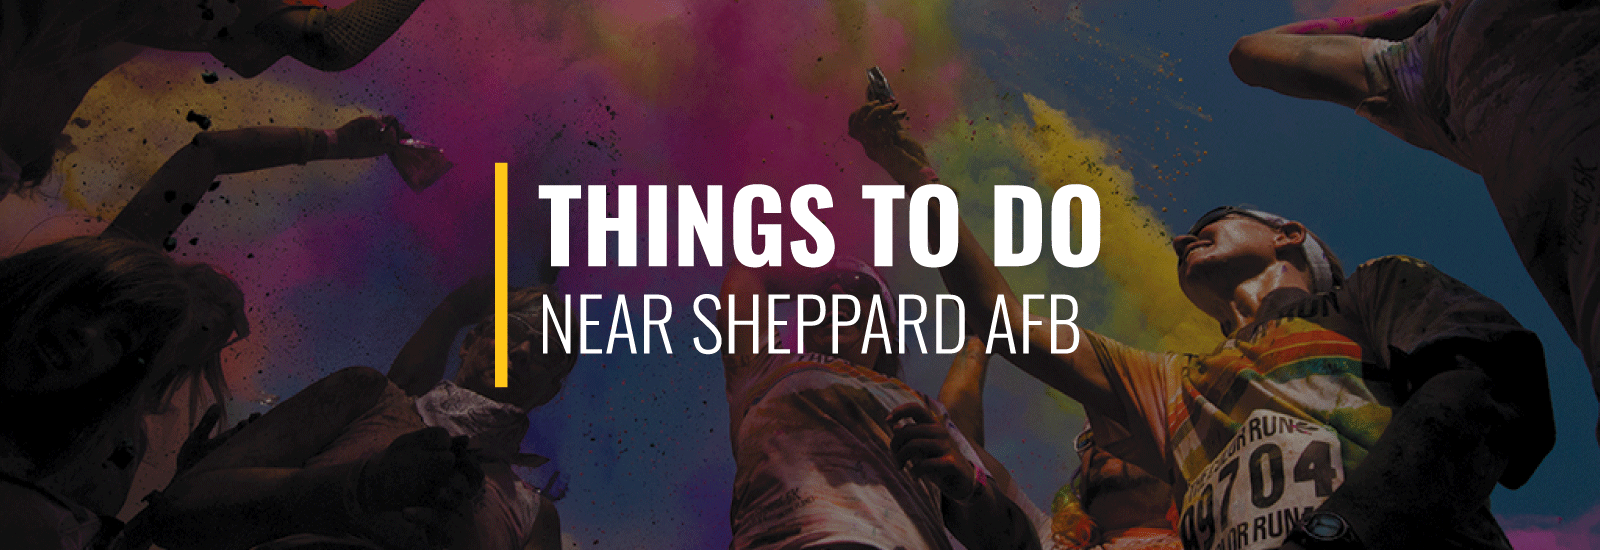 Sheppard AFB Things to Do